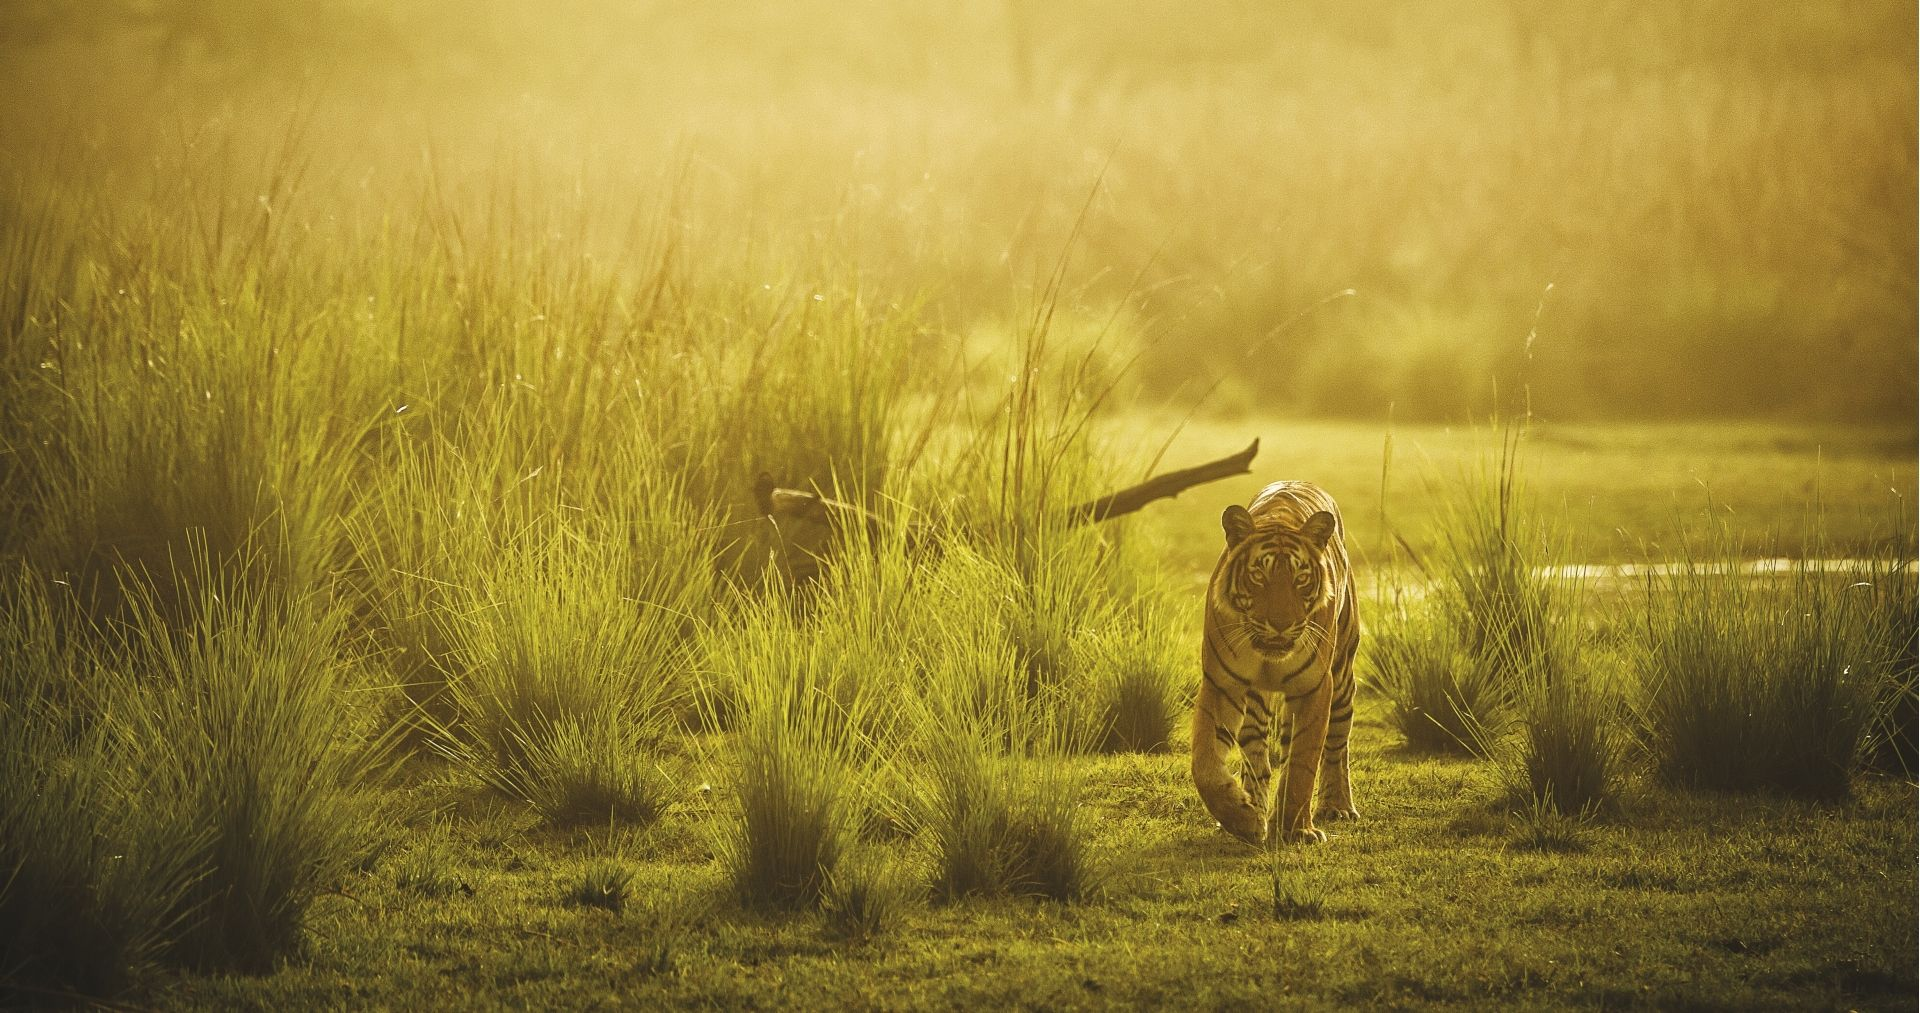 SUJAN Sher Bagh – Tiger in the mist